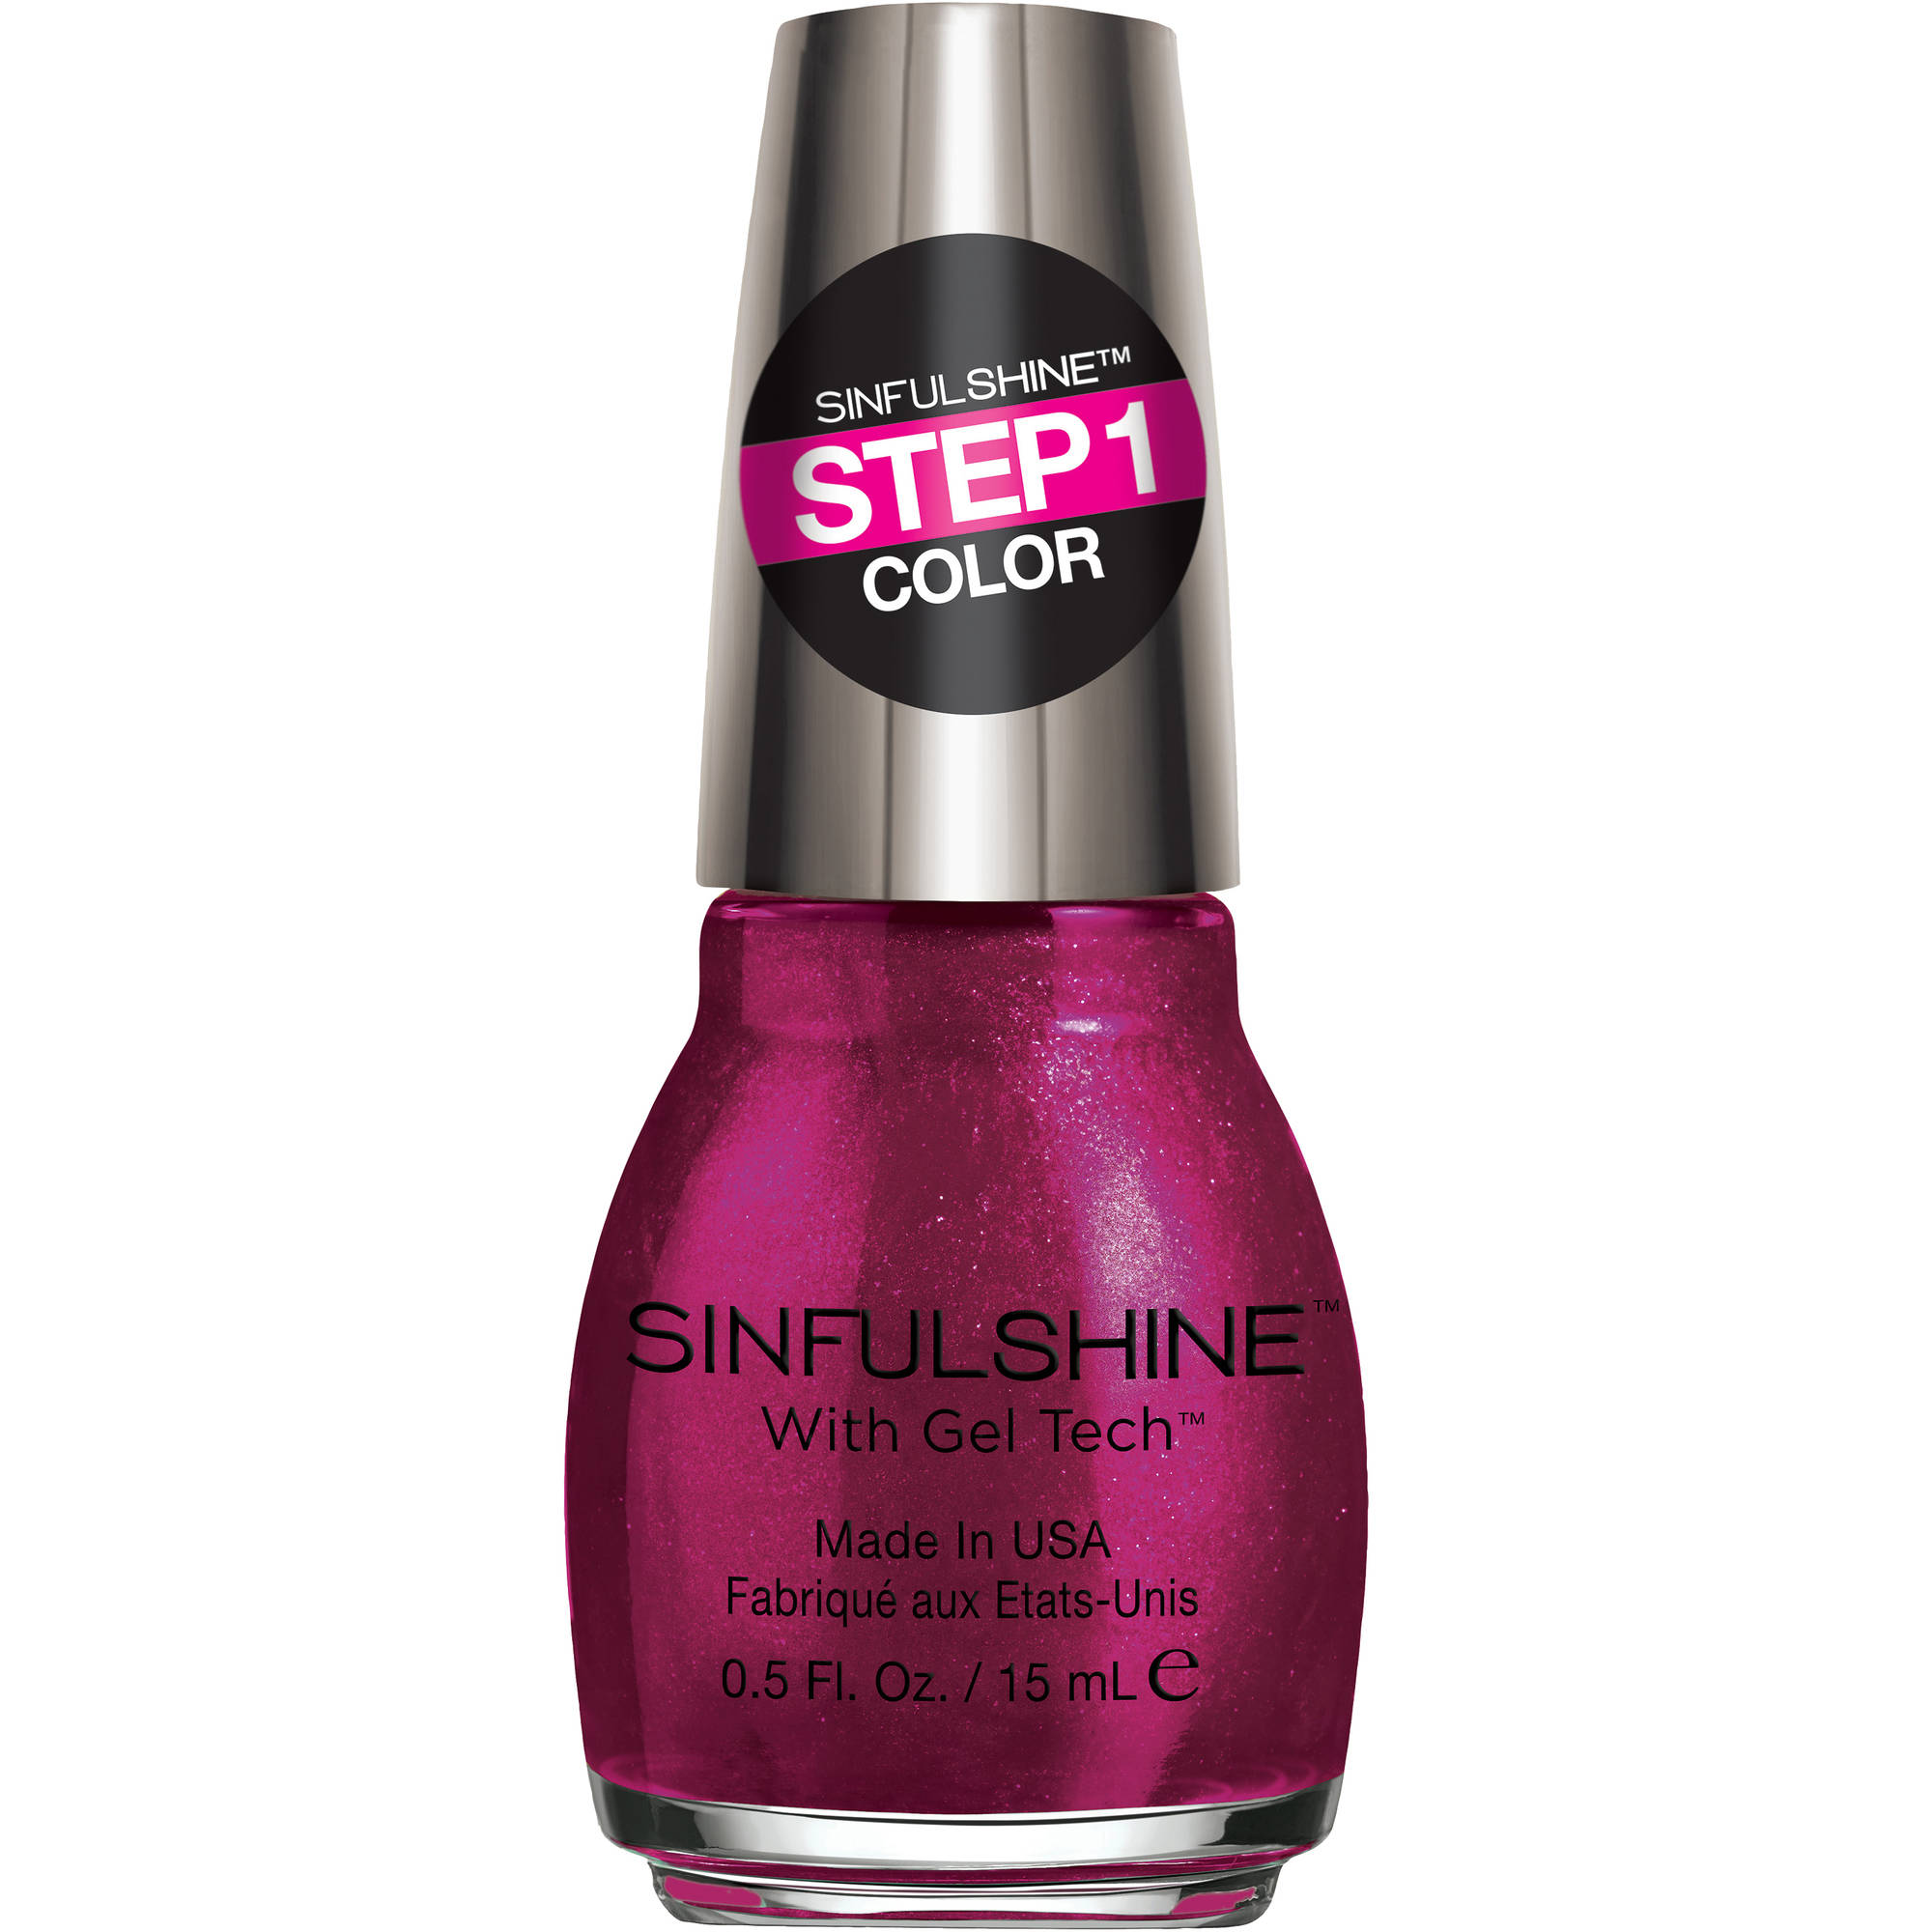 SinfulColors SinfulShine Step 1 Color Nail Color, Haute Shine, 0.5 fl oz